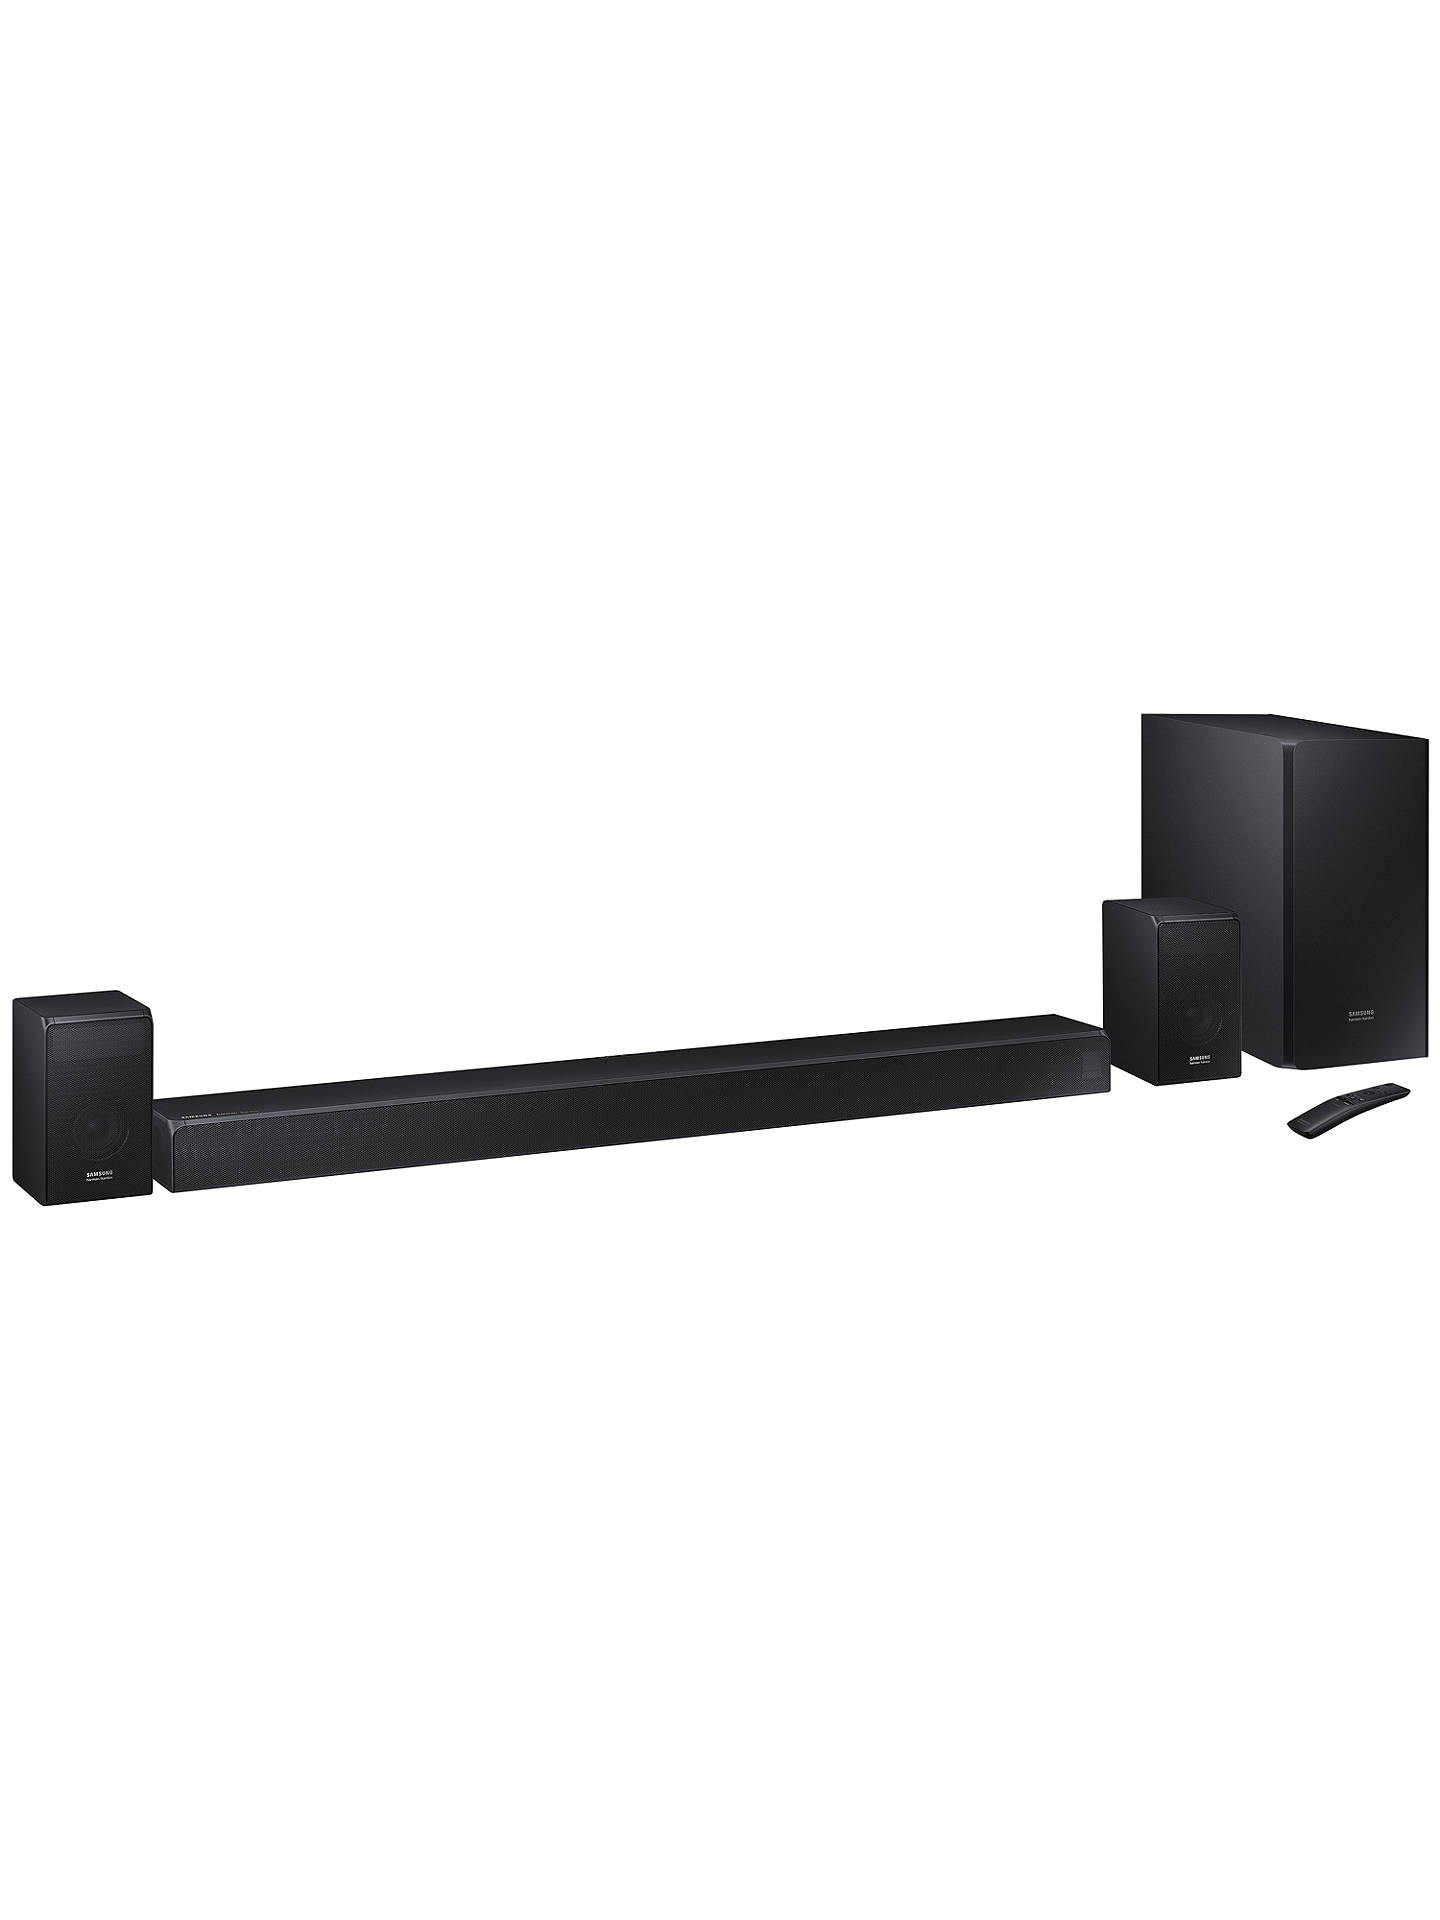 Samsung harman/kardon HW-N950 Bluetooth Wi-Fi Sound Bar with Dolby Atmos,  Wireless Subwoofer & Rear Speakers